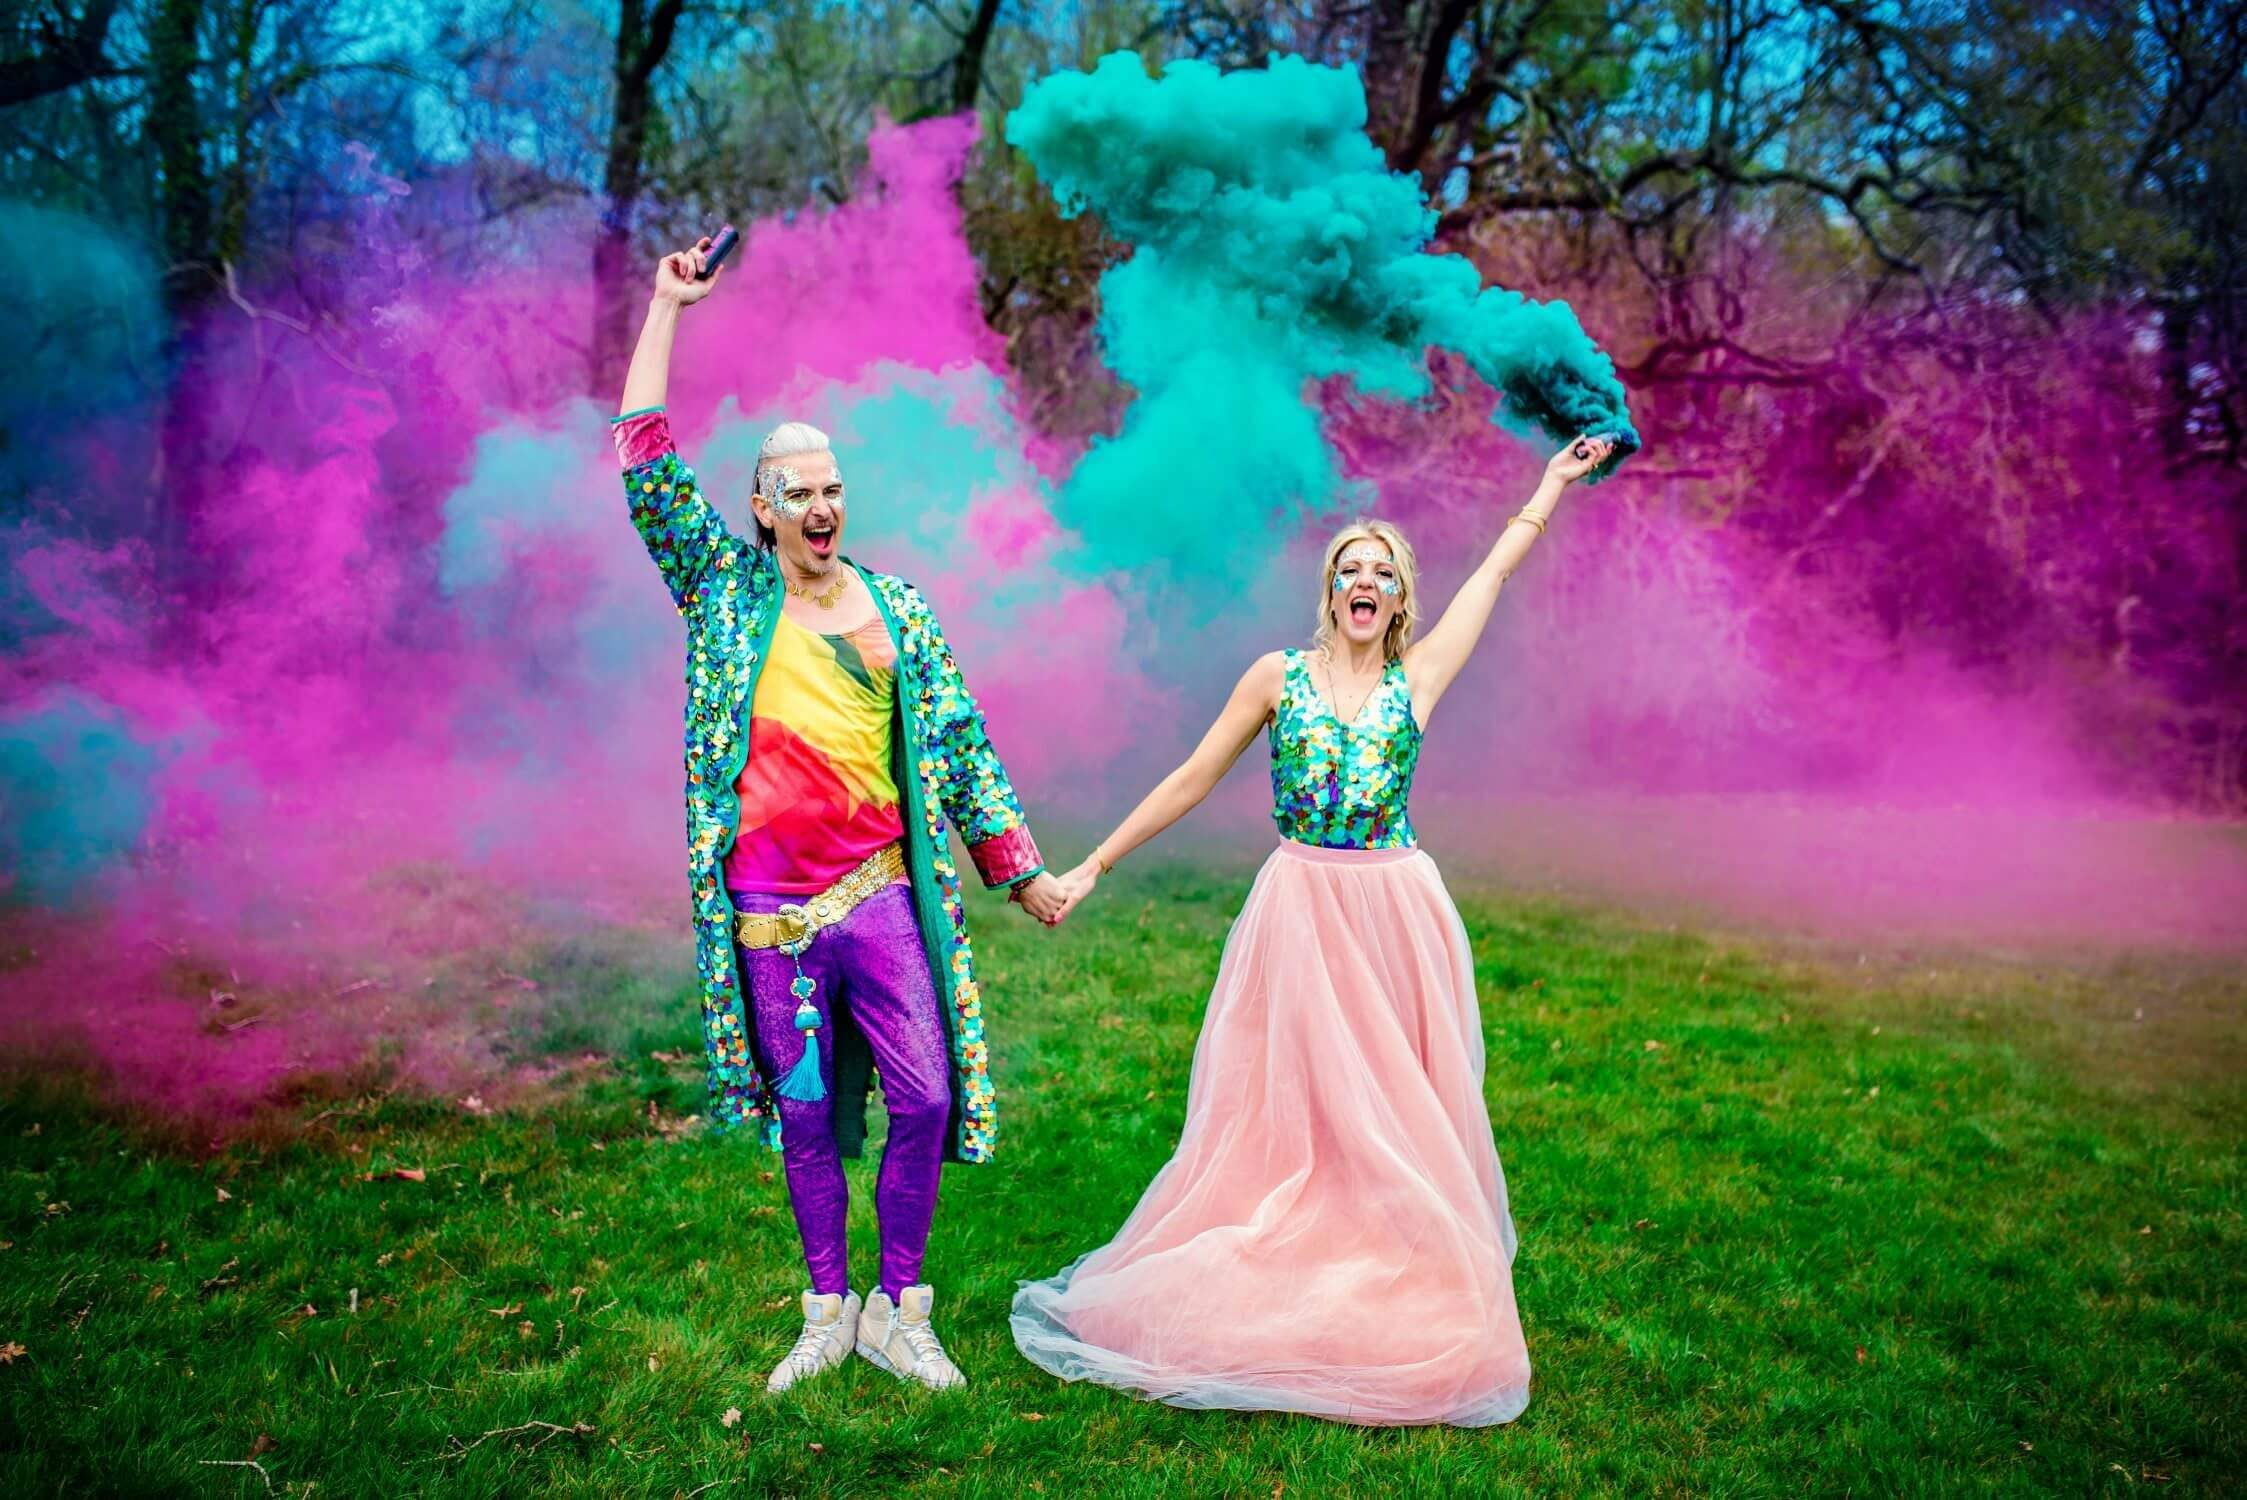 Colourful-Festival-Treehouse-Wedding-Photography-by-Vicki-19-2247x1500-1-2247x1500